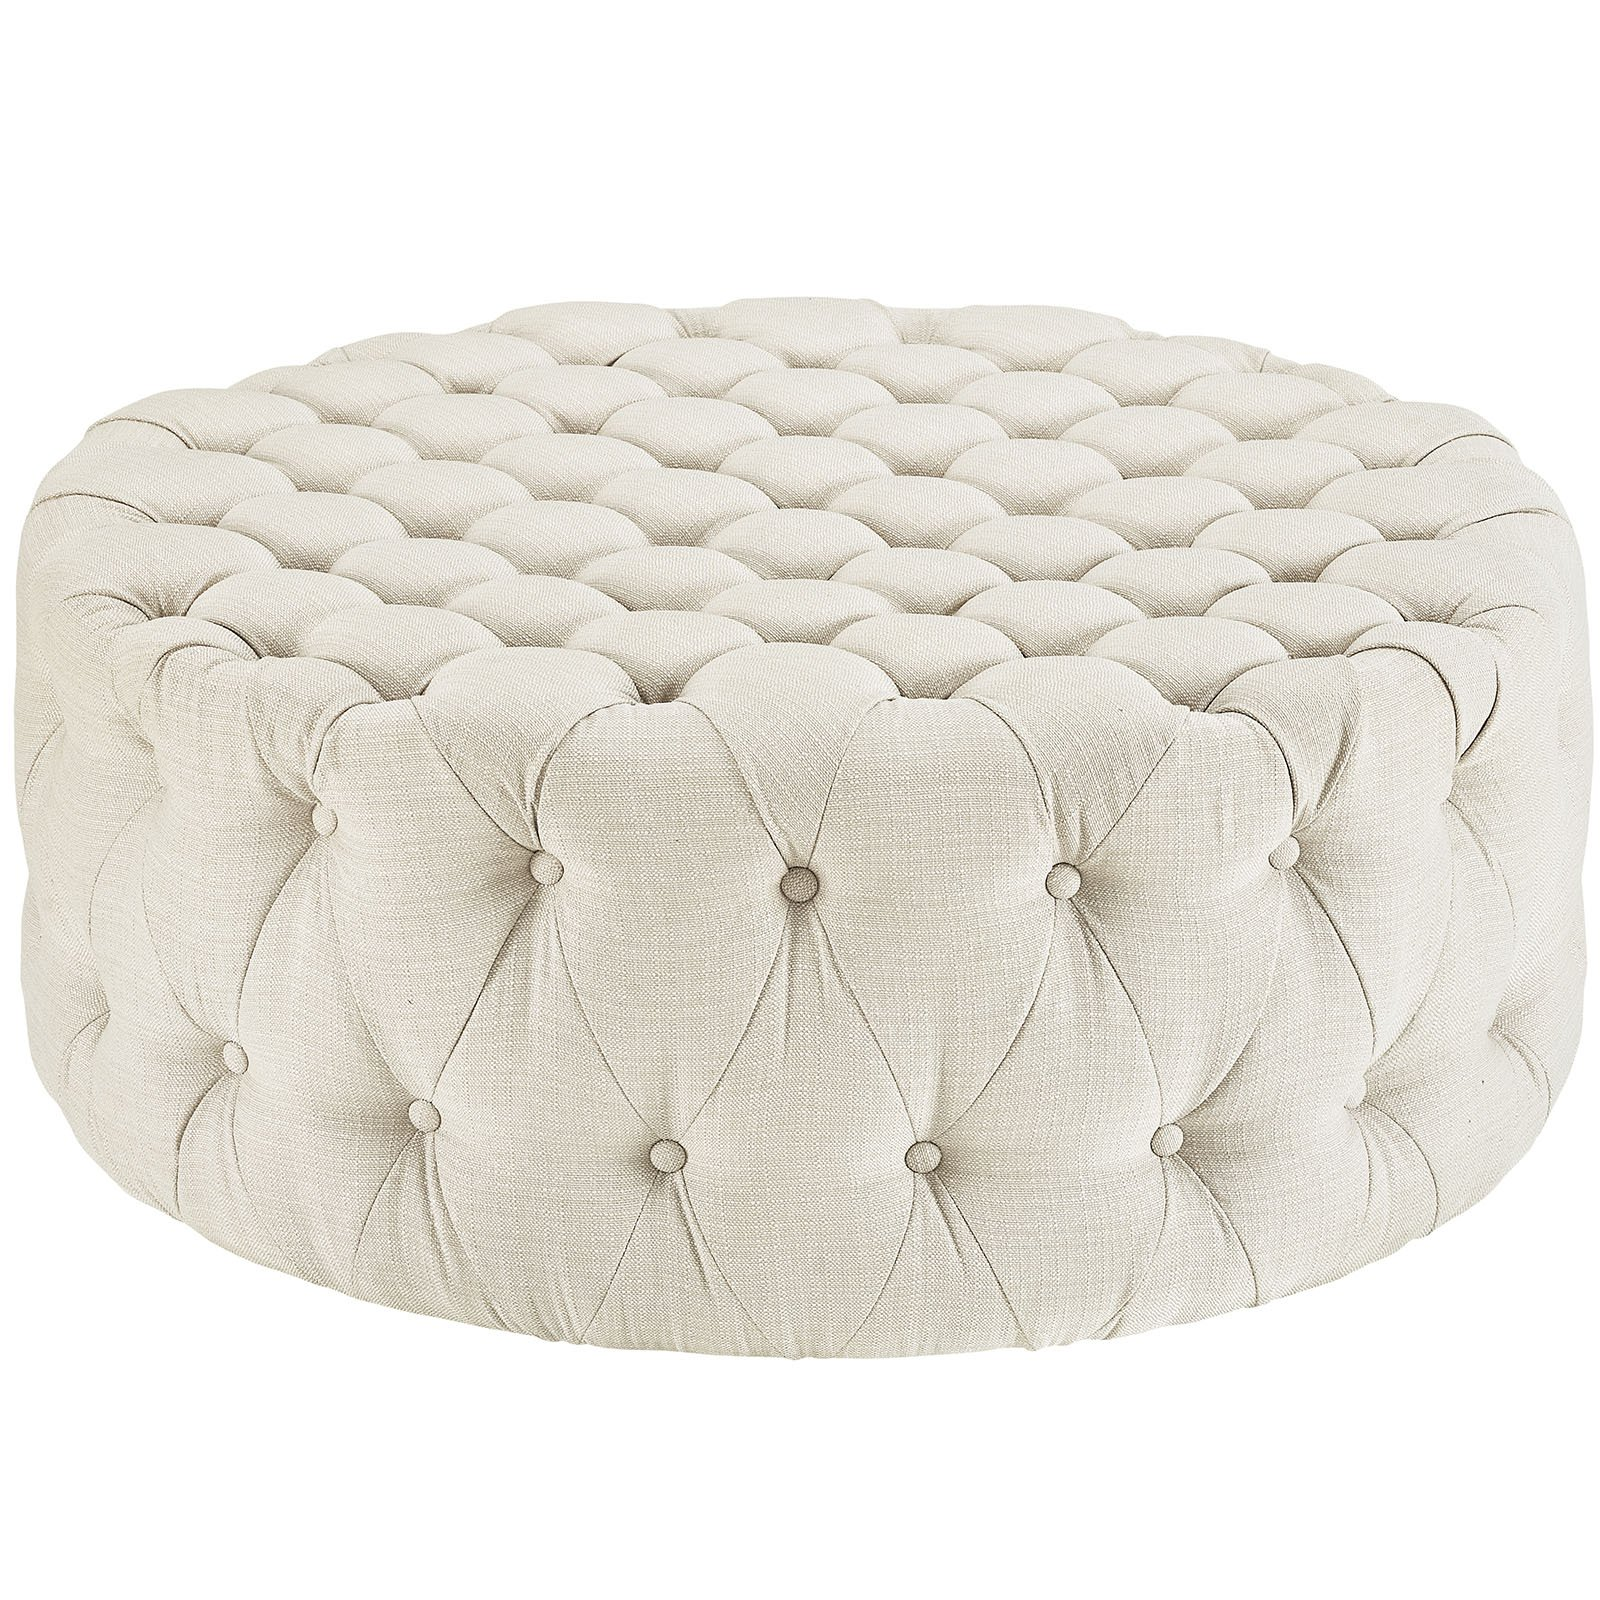 Amour Large Round Upholstered Tufted Fabric Ottoman